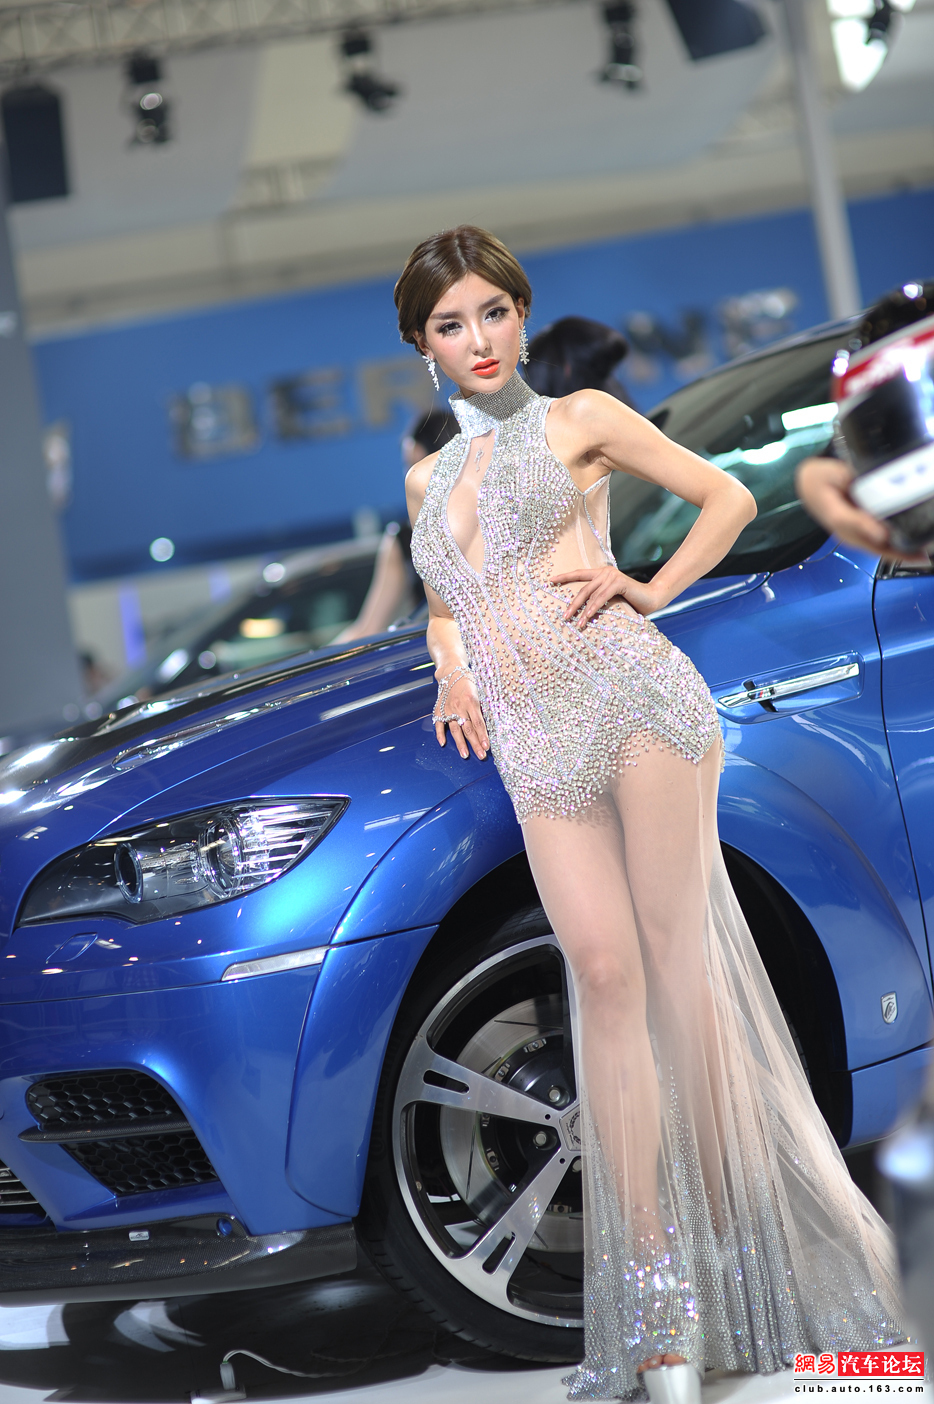 Japan car show model girls amatuer girl pictures